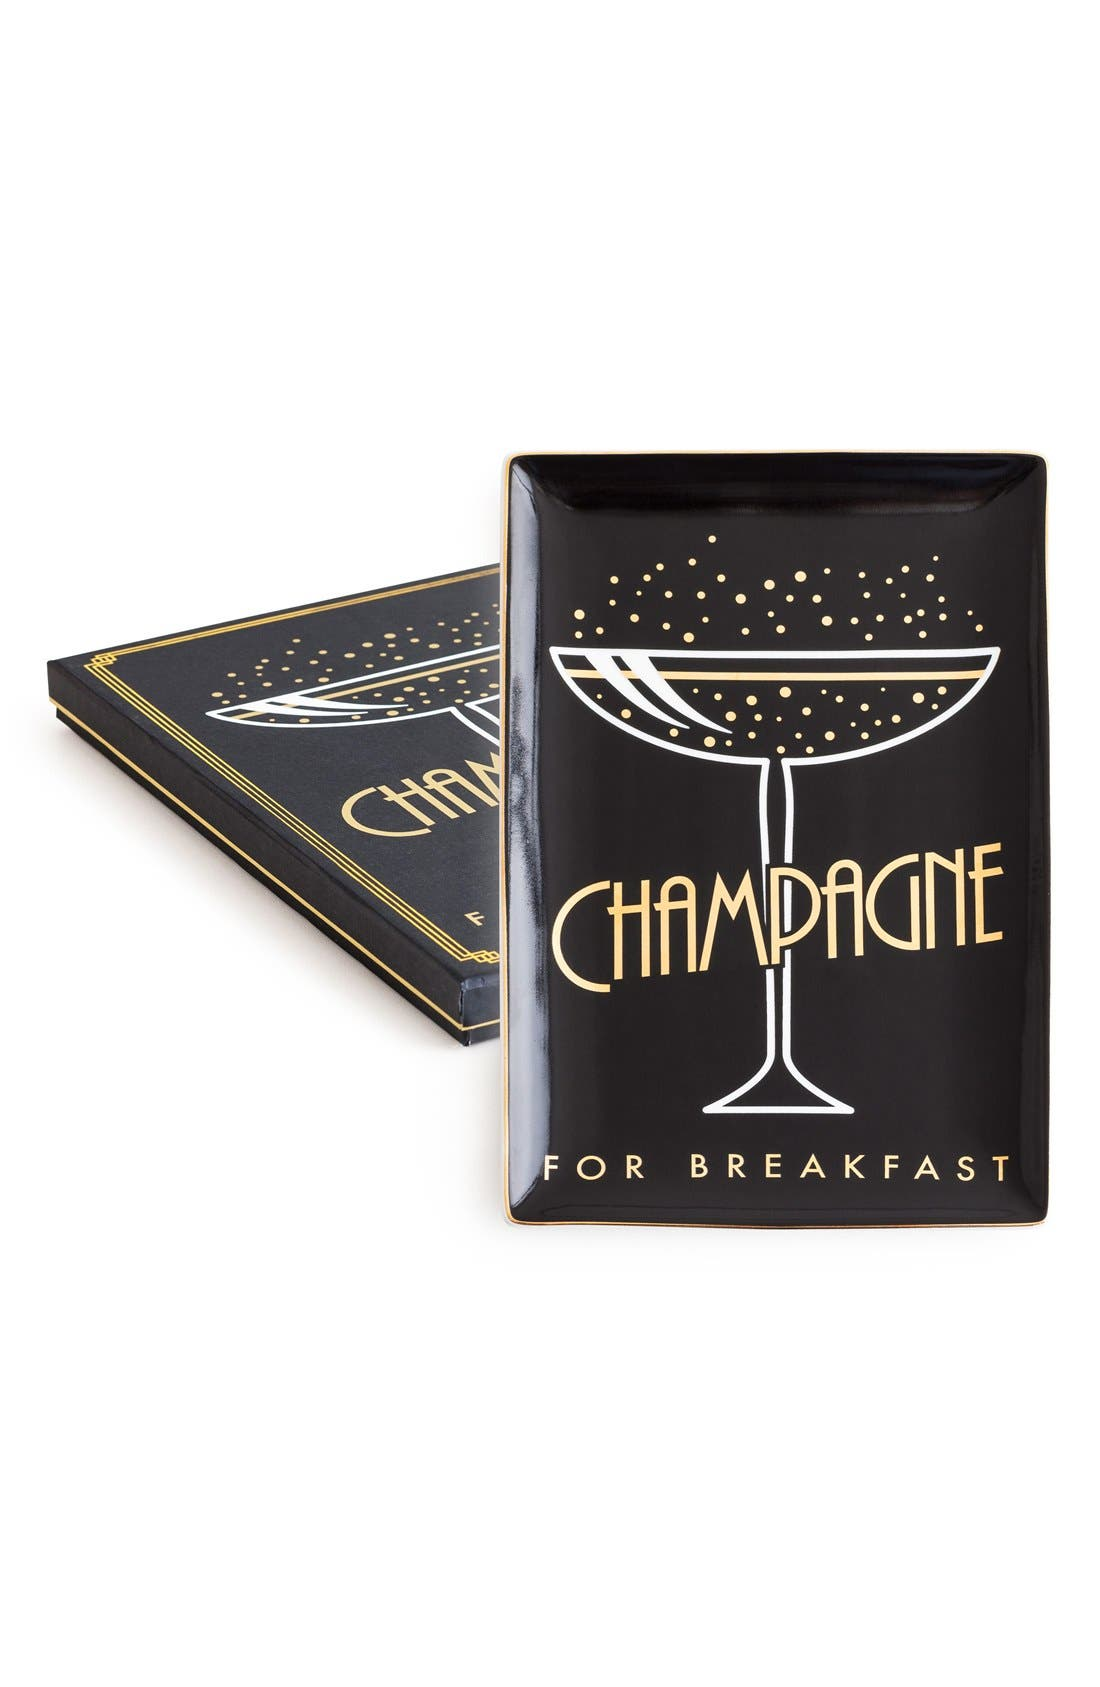 Champagne for Breakfast Porcelain Trinket Tray,                             Main thumbnail 1, color,                             001